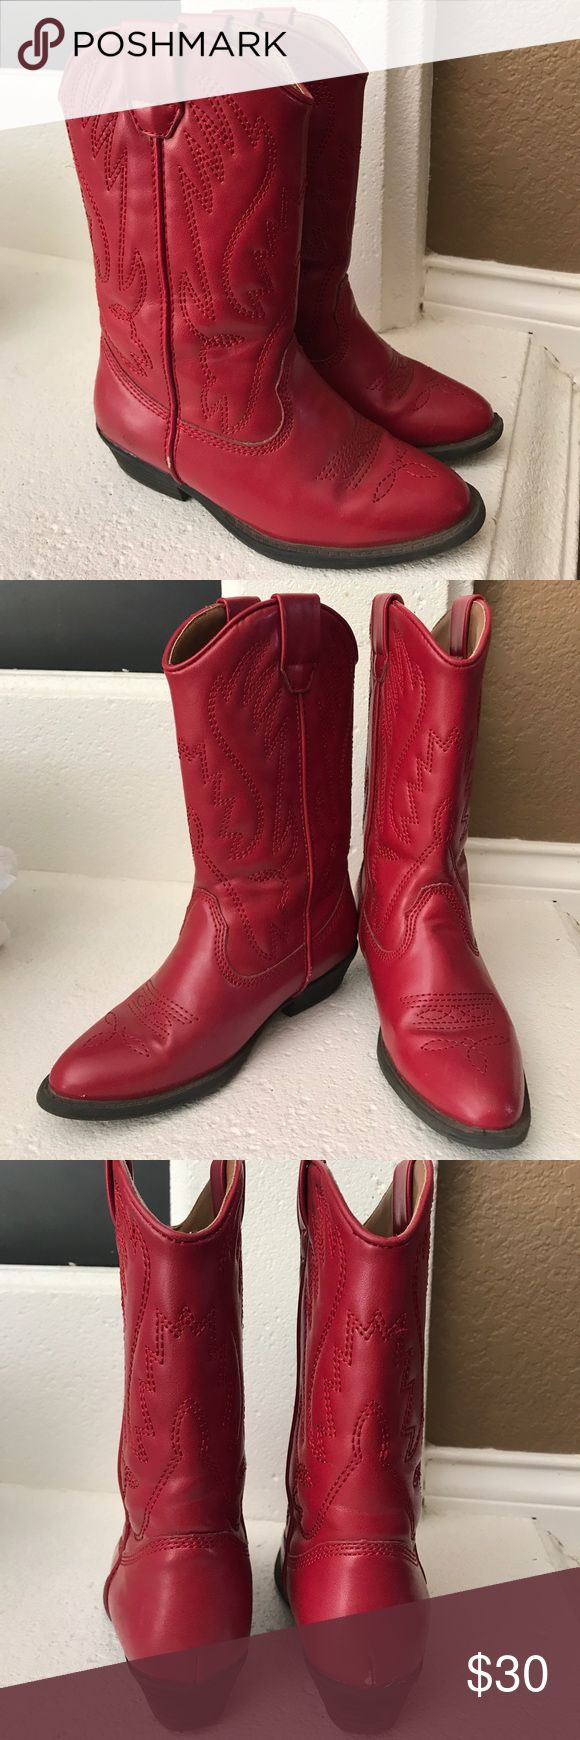 Nordstrom Girls Red Cowboy boots The cutest little western boots... deep red color... hardly worn... you will love these on your little! Nordstrom Shoes Boots